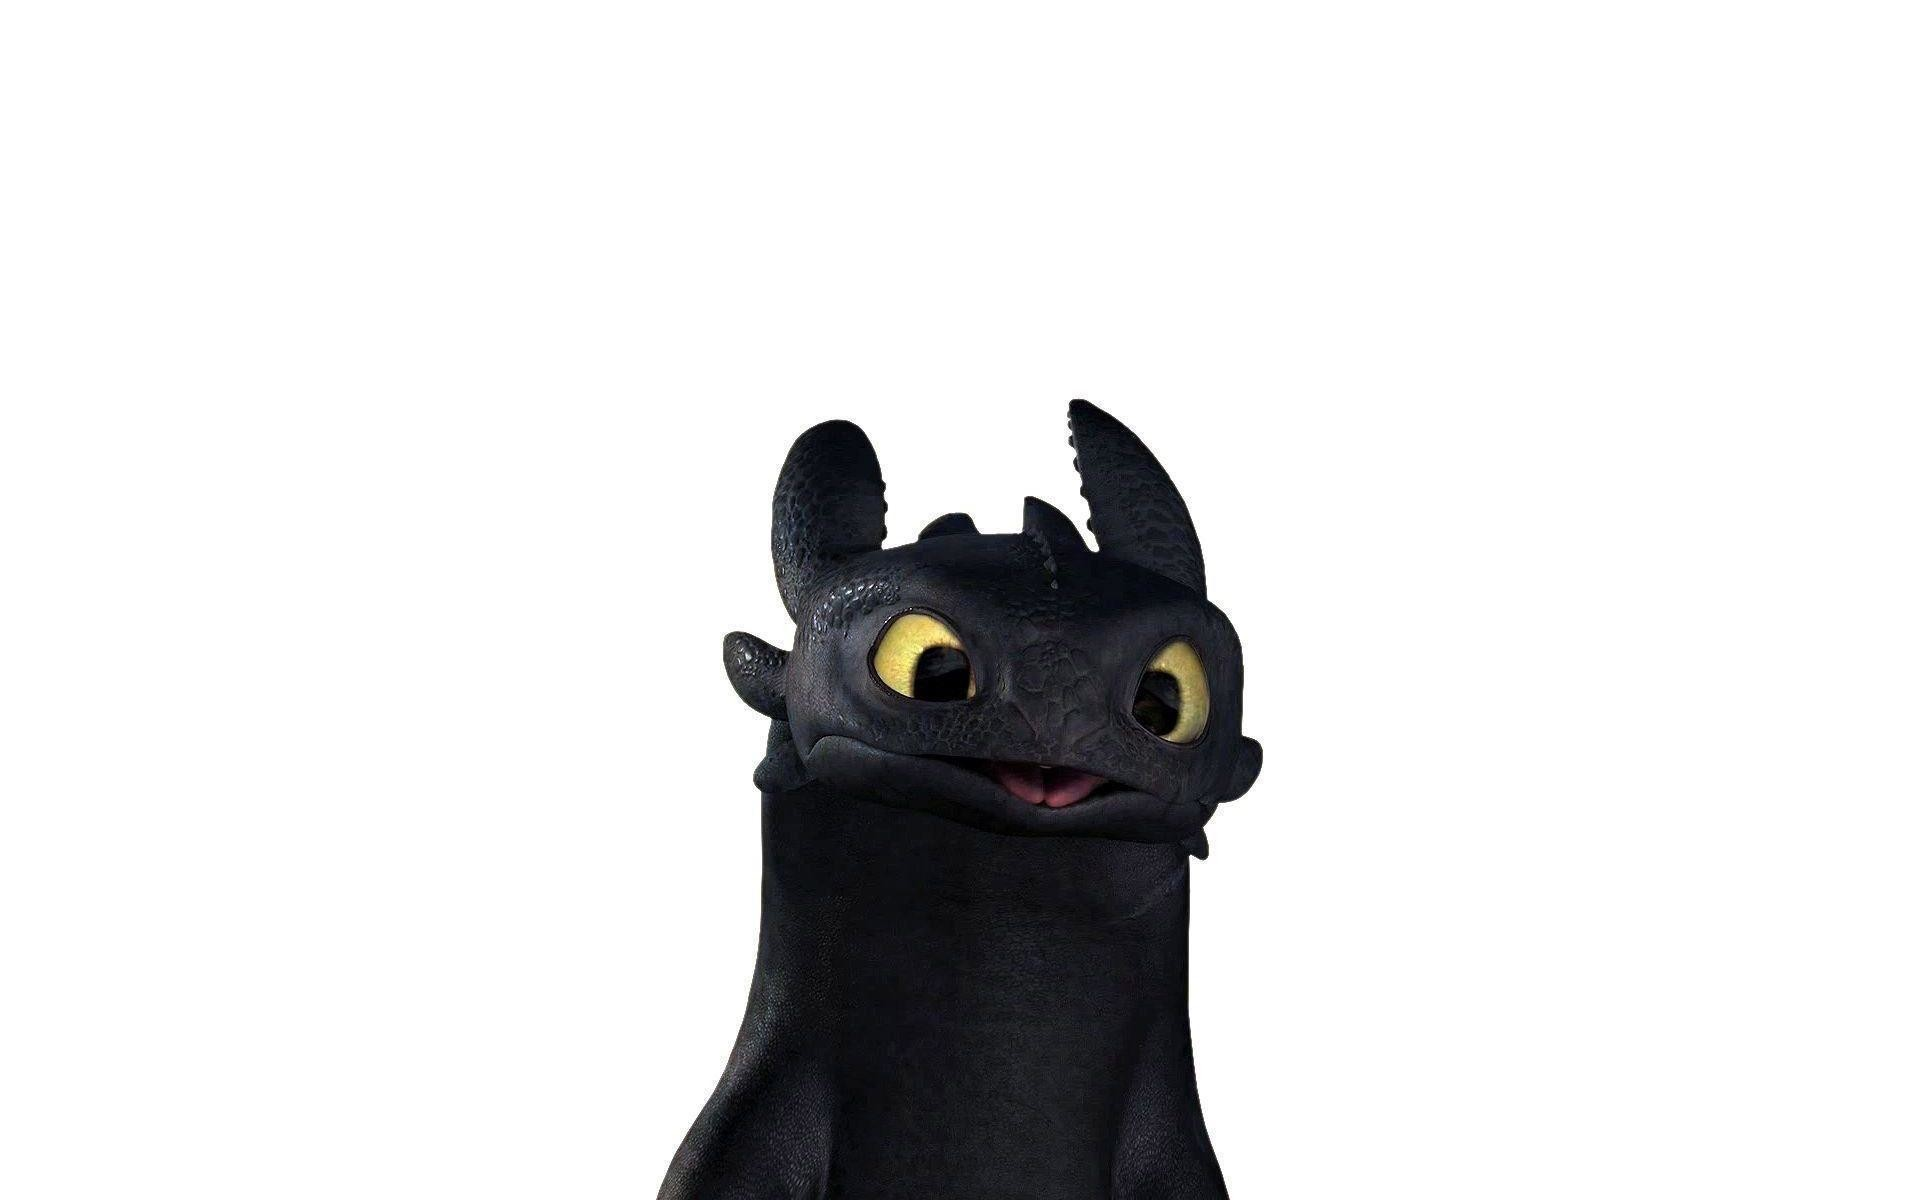 Toothless Wallpapers – Full HD wallpaper search